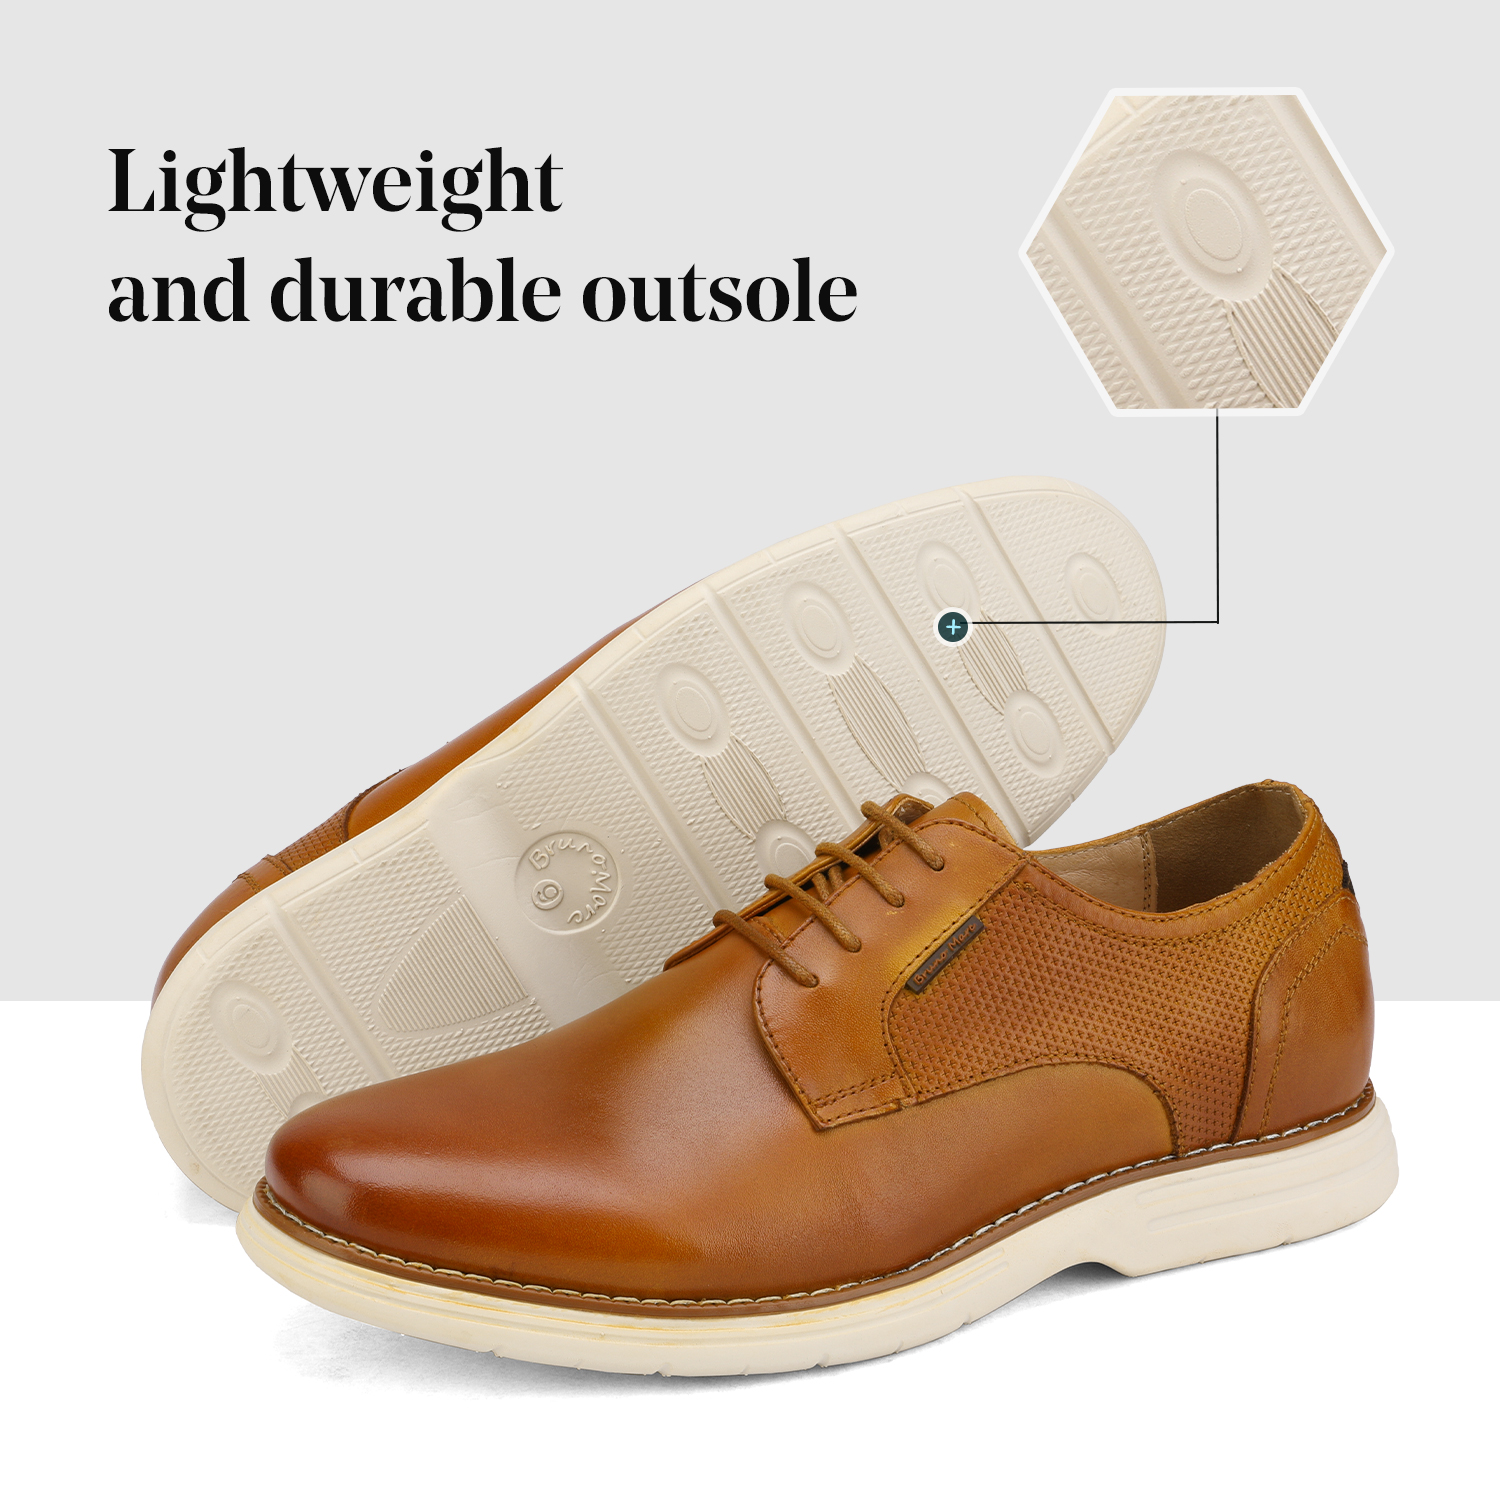 Mens-Fashion-Genuine-Leather-Business-Dress-Sneakers-Casual-Lace-up-Oxford-Shoe thumbnail 15